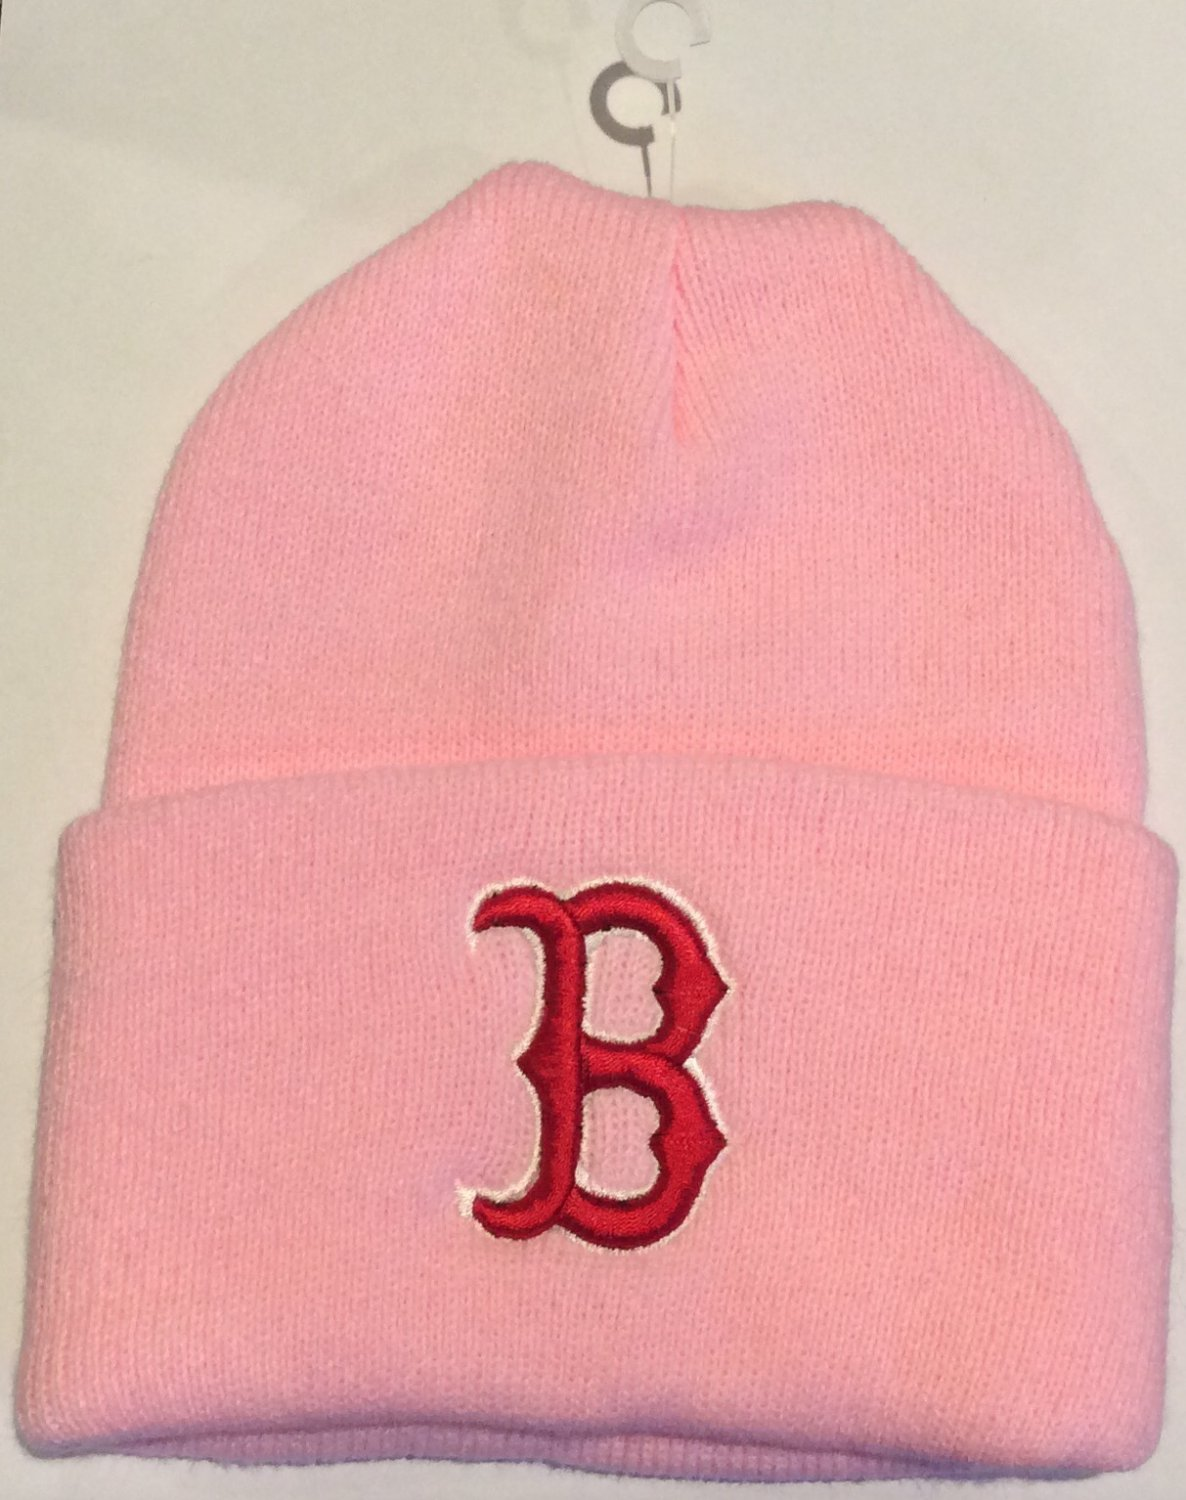 MLB RED SOX Women's Knit Pink Beanie Hat